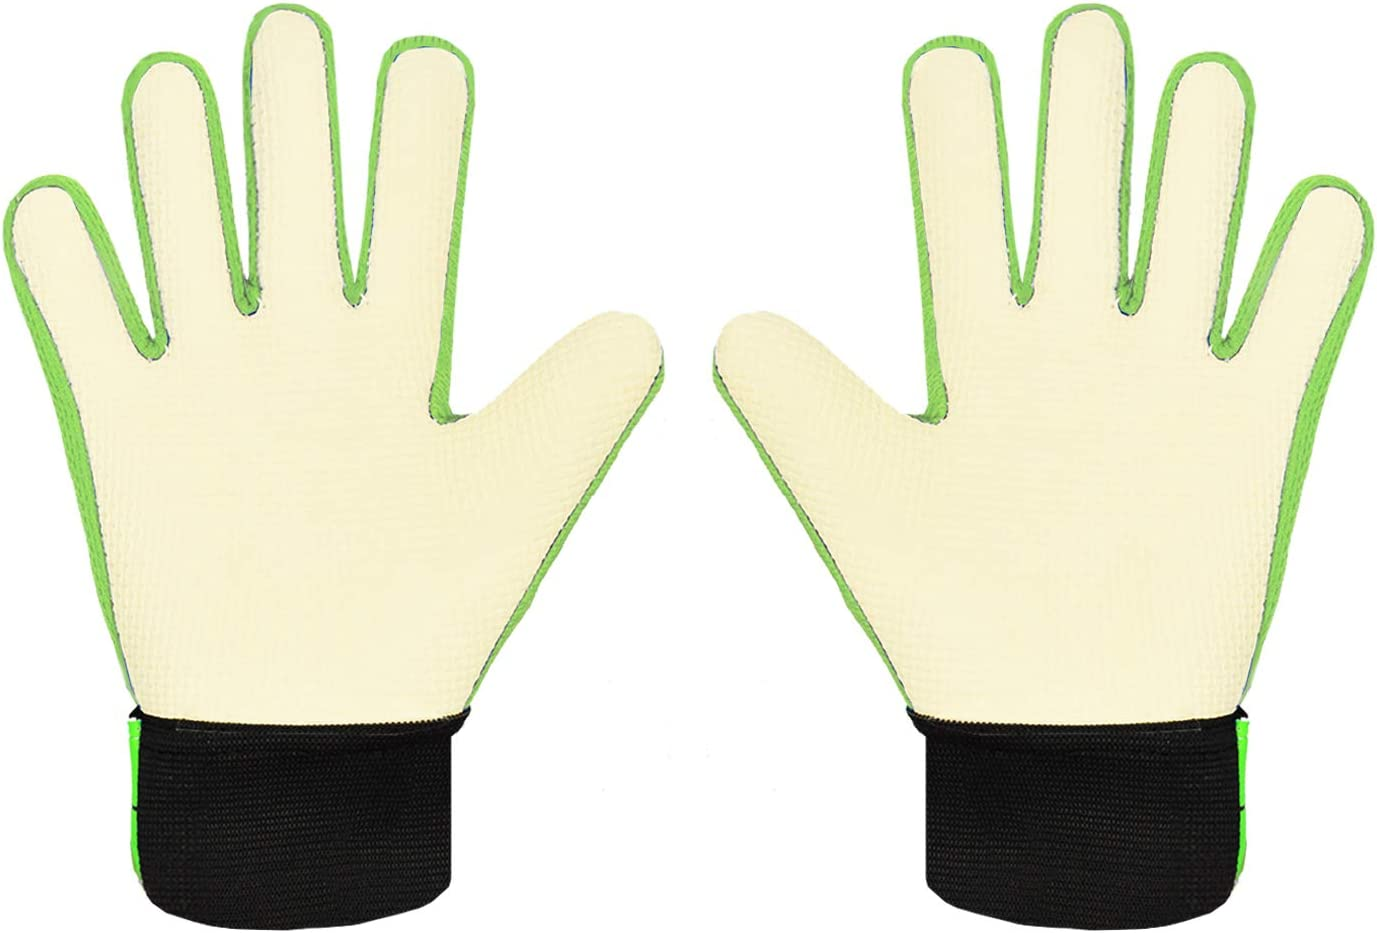 Sportout Kids Junior Goalkeeper Gloves Boys and Girls Training Gloves with Double Wrist Protection and Non-slip Wear Resistant Latex Material to Give Splendid Protection to Prevent Injuries